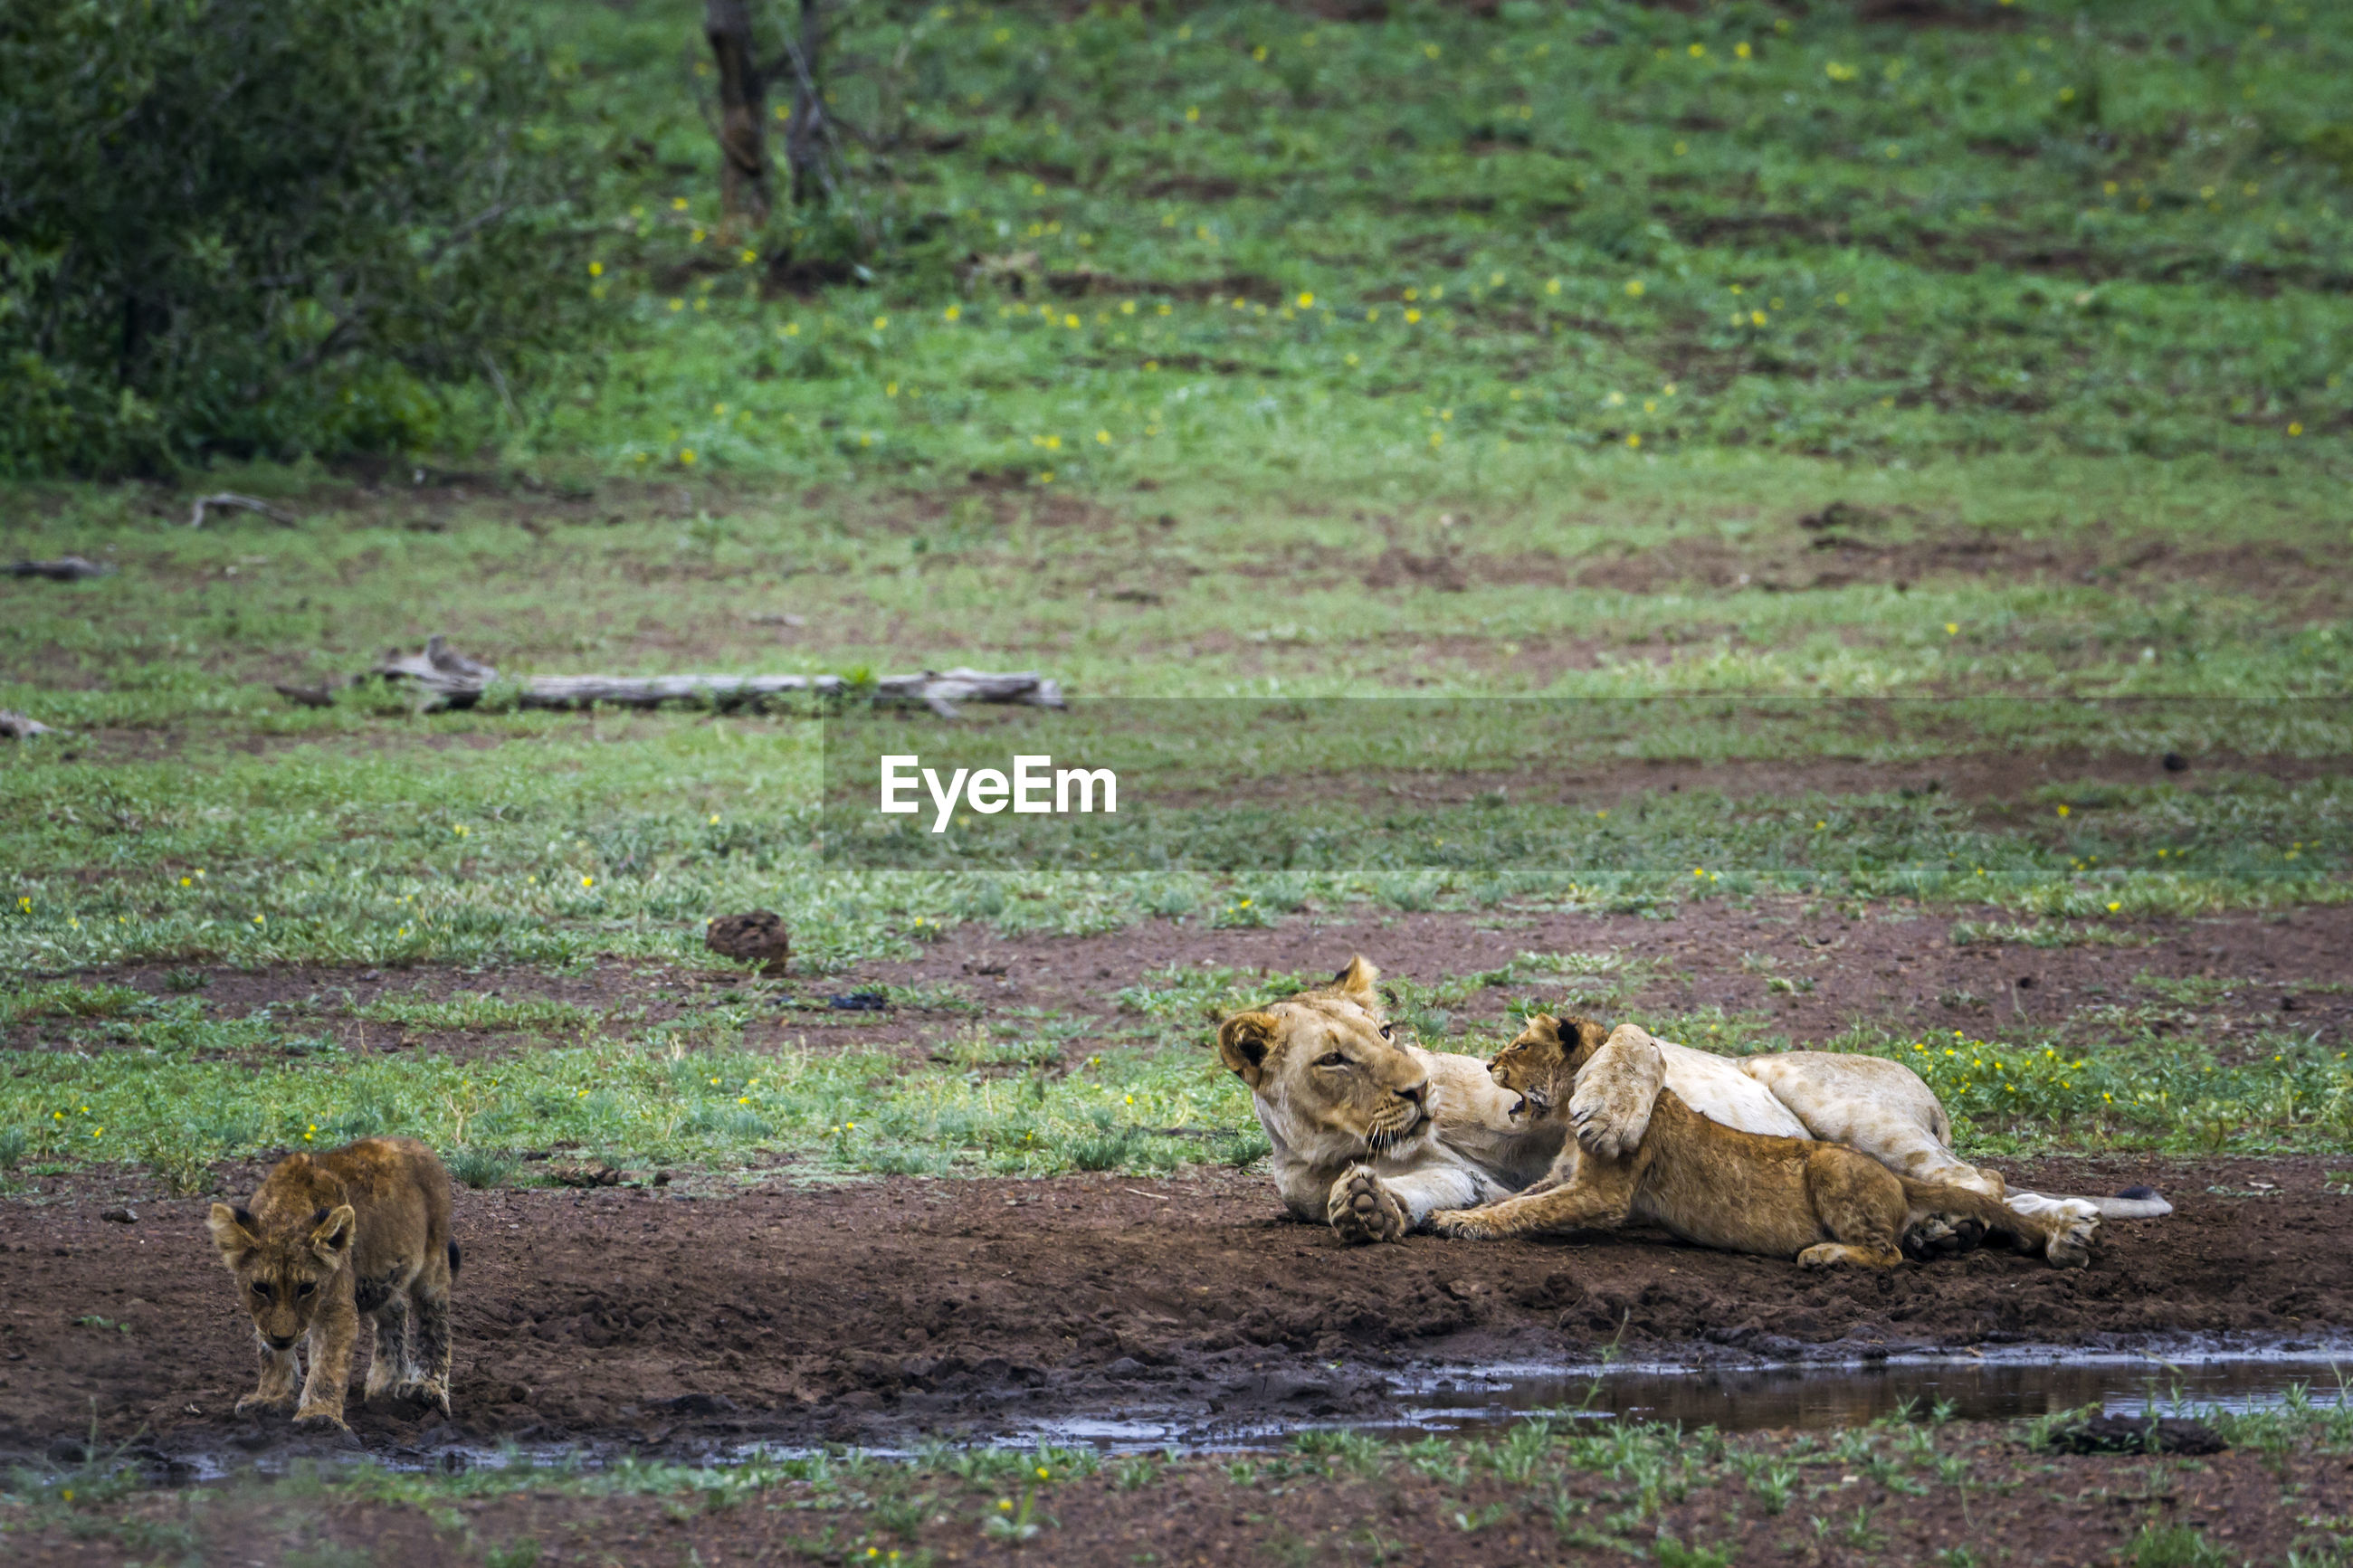 Lioness playing with cub on land